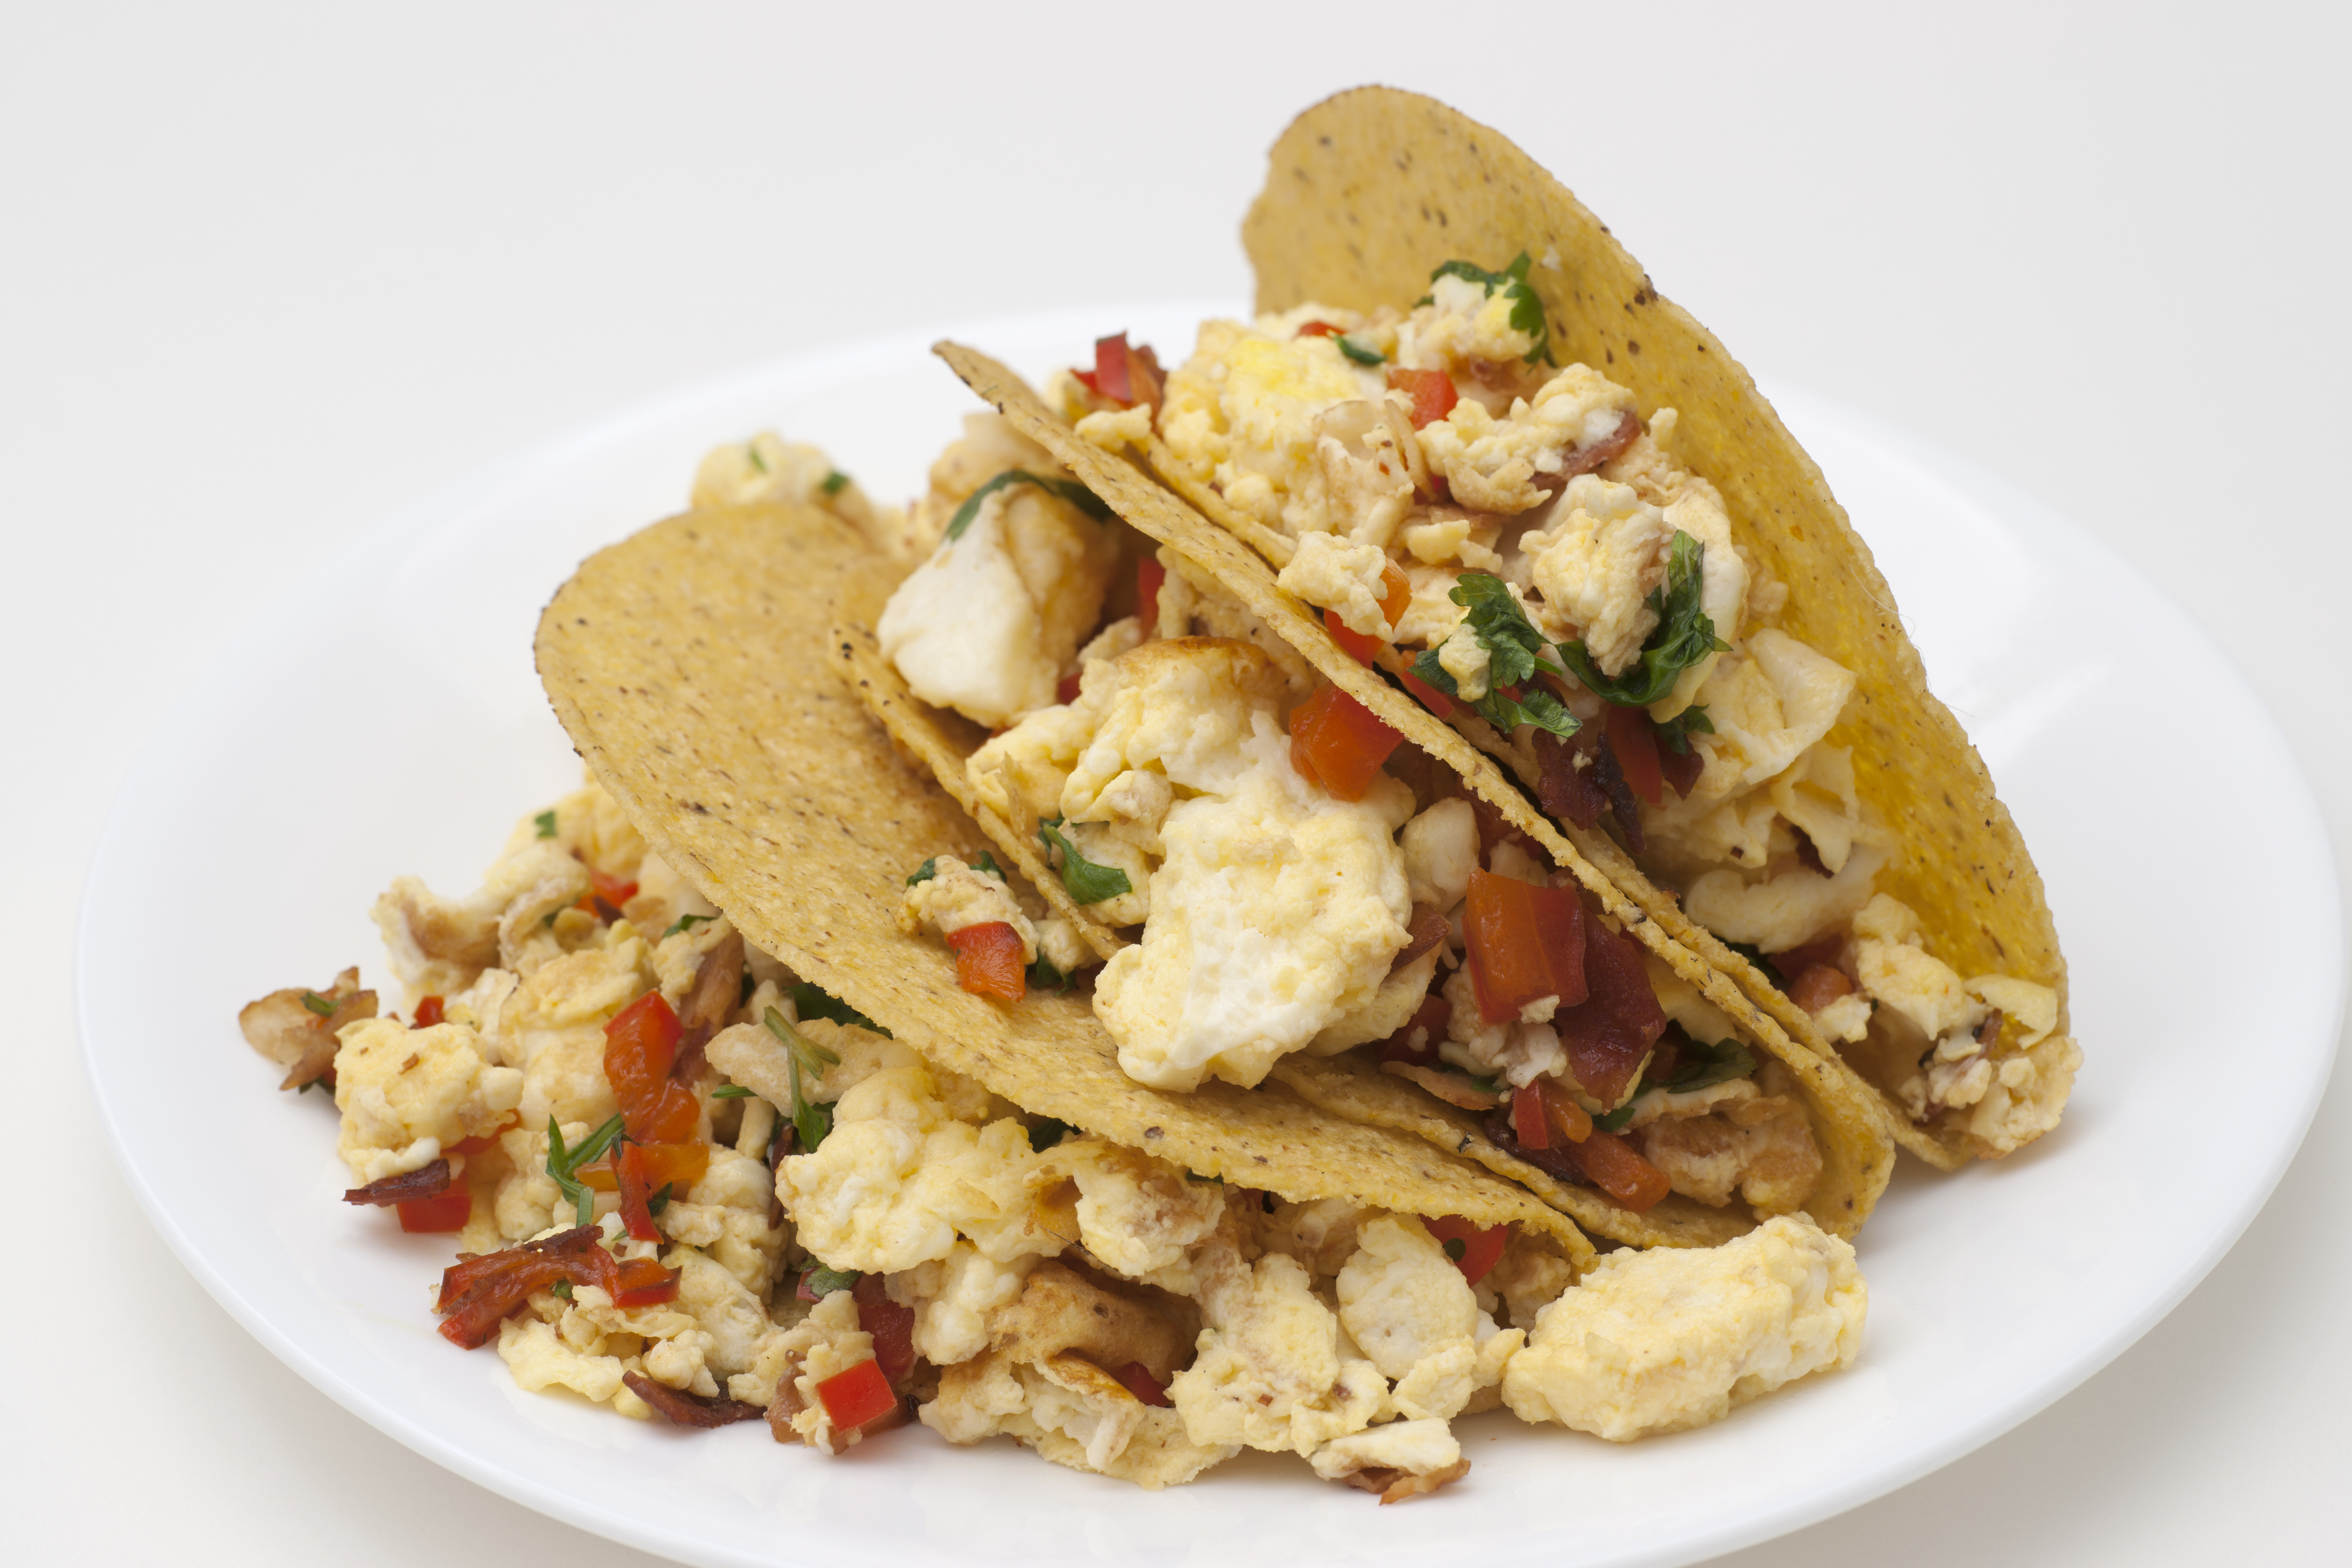 2013-08-16-BREAKFASTTACO_original.jpg